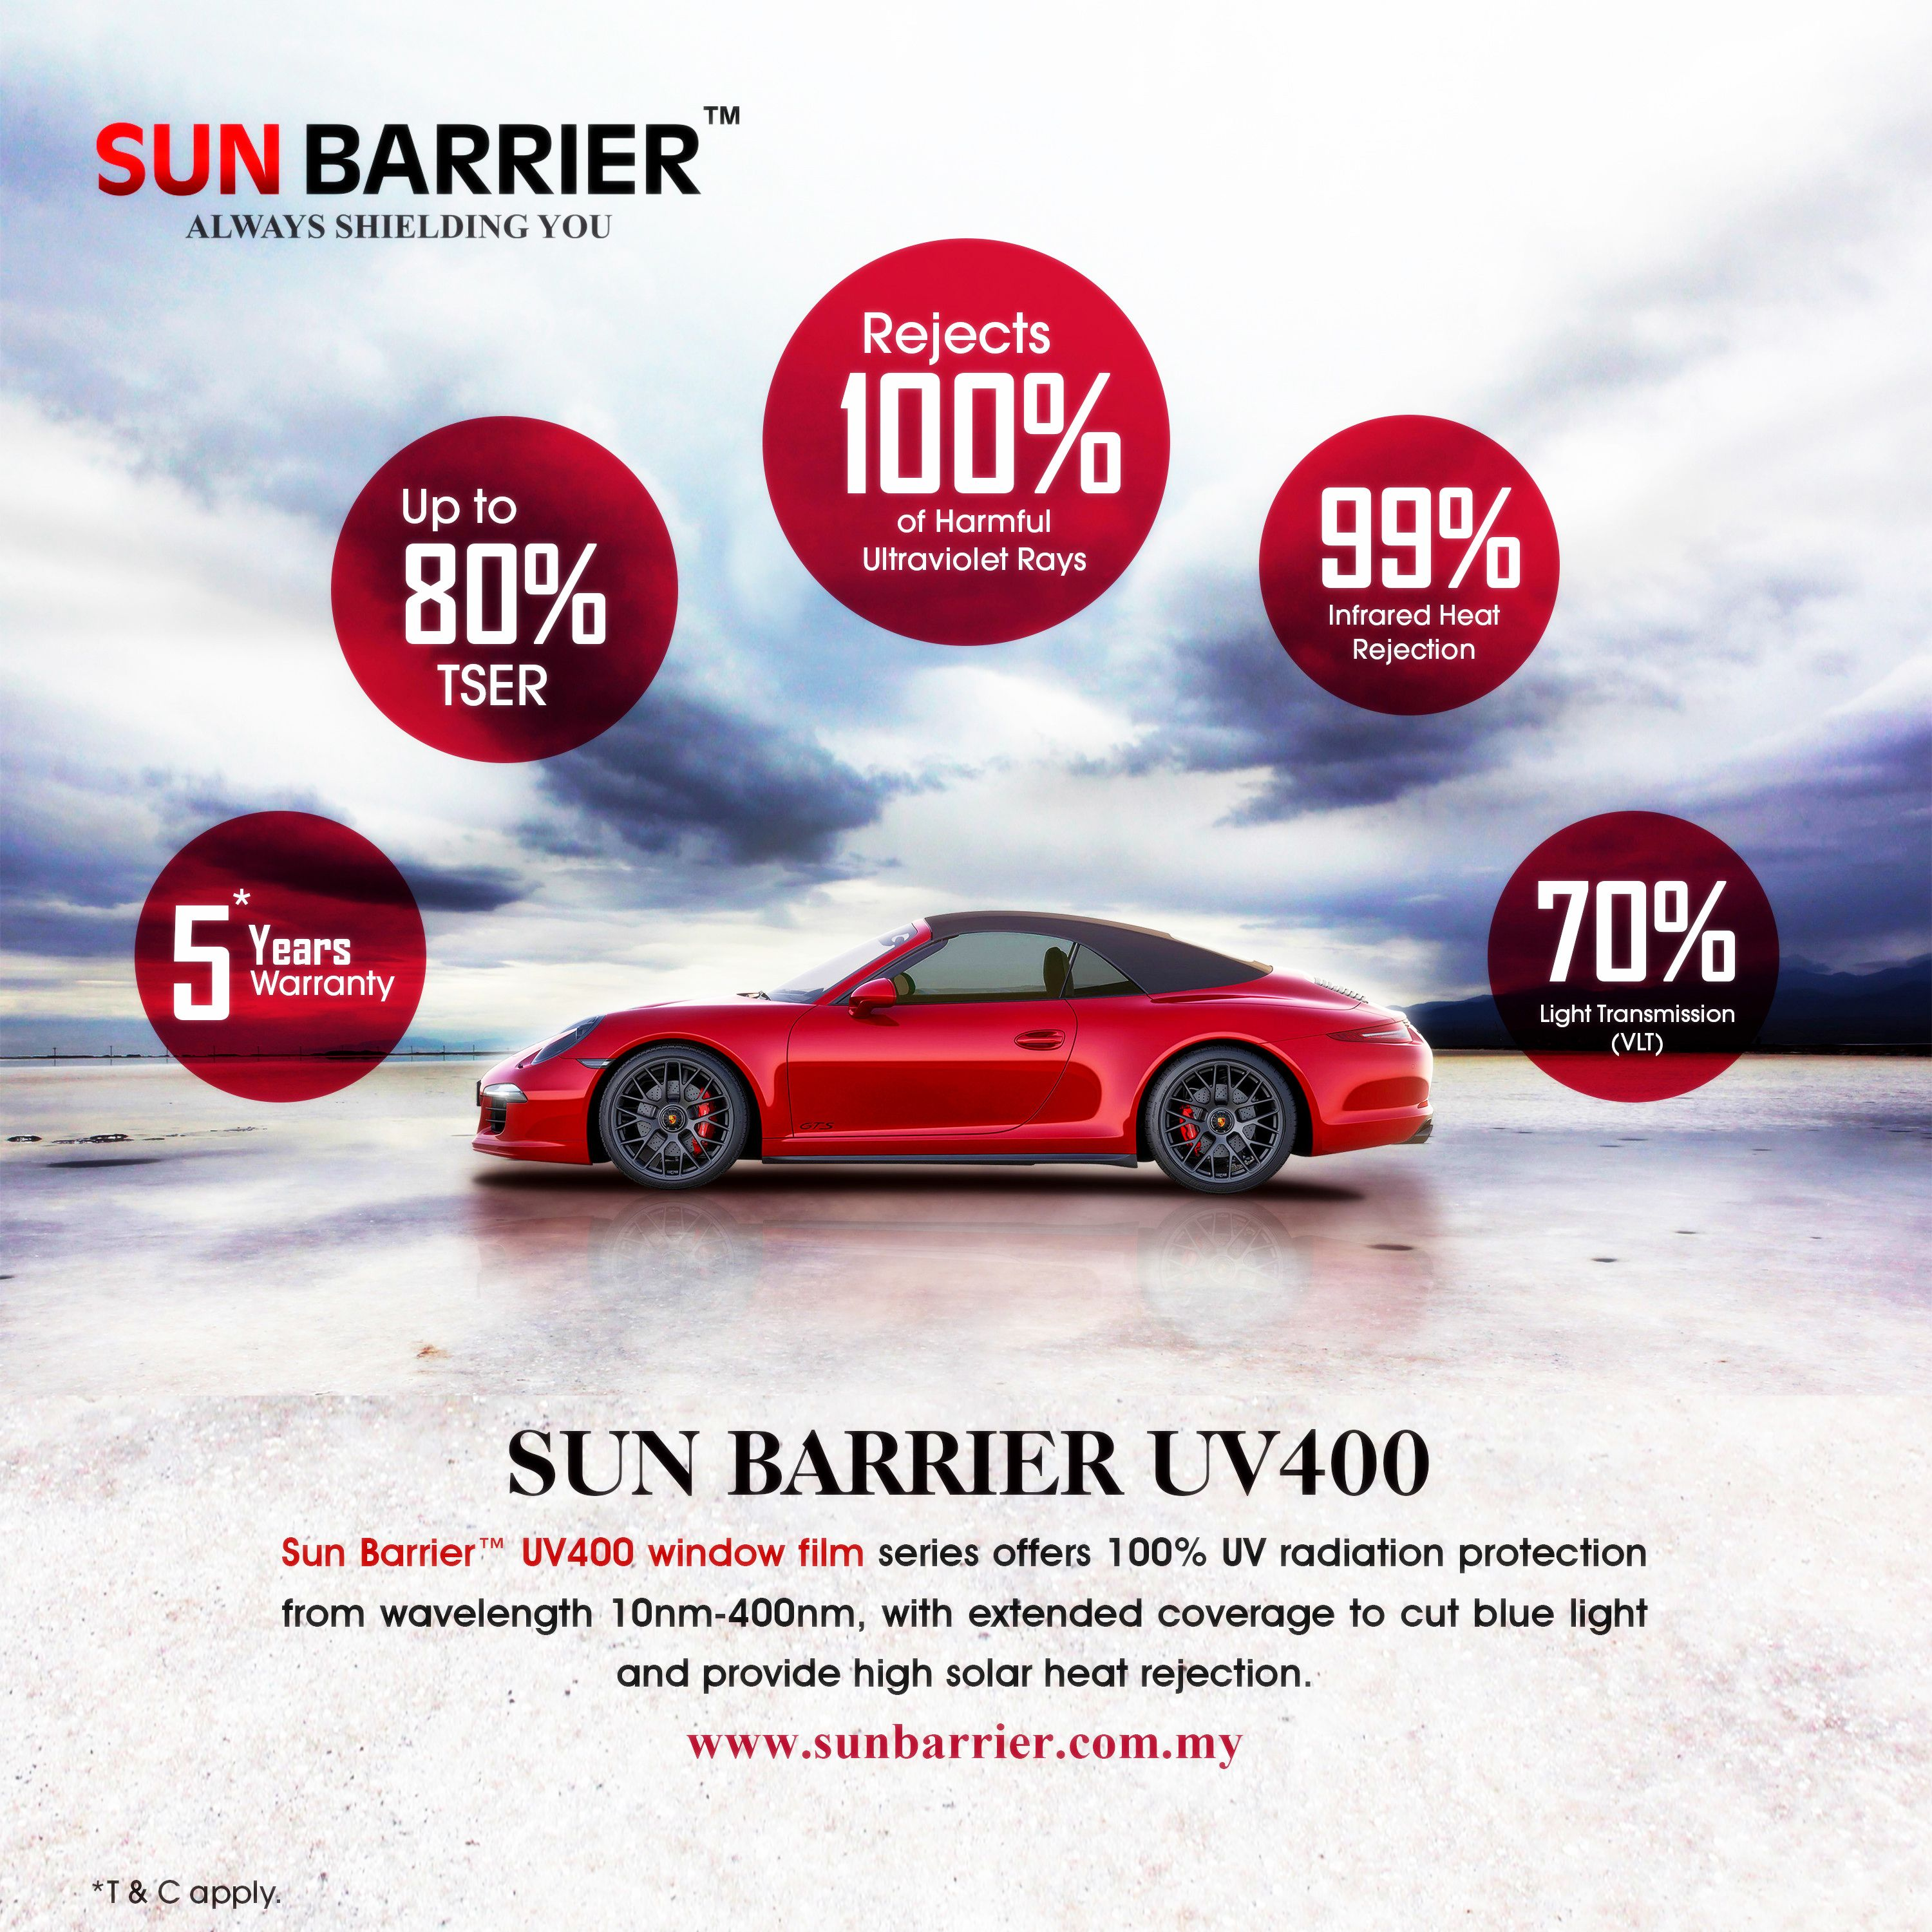 Sun Barrier Window Film Provides Excellent Uv Radiation Protection Blue Light Protection And High Performance Solar Heat Rejection Http Www Sunbarrier Com